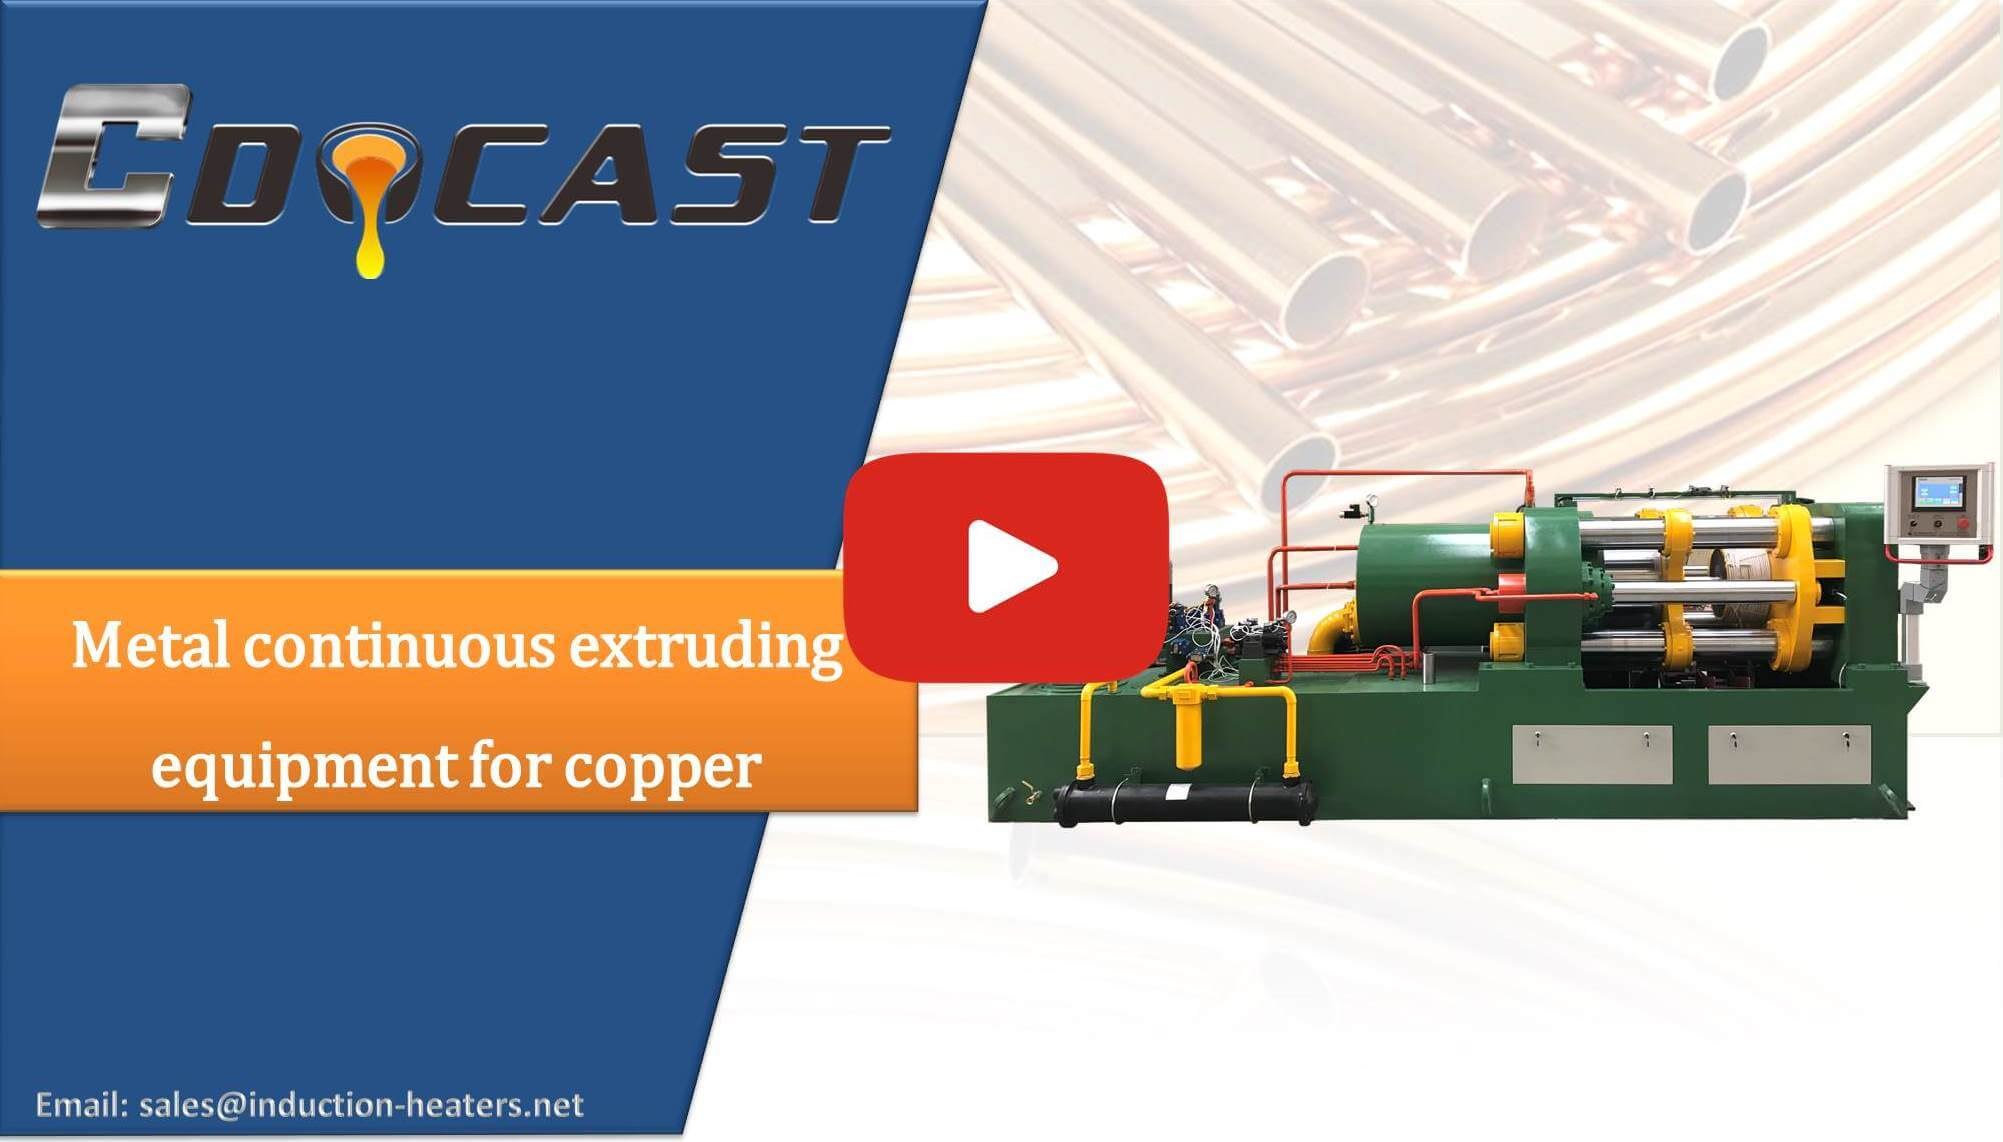 Metal continuous extruding equipment for copper